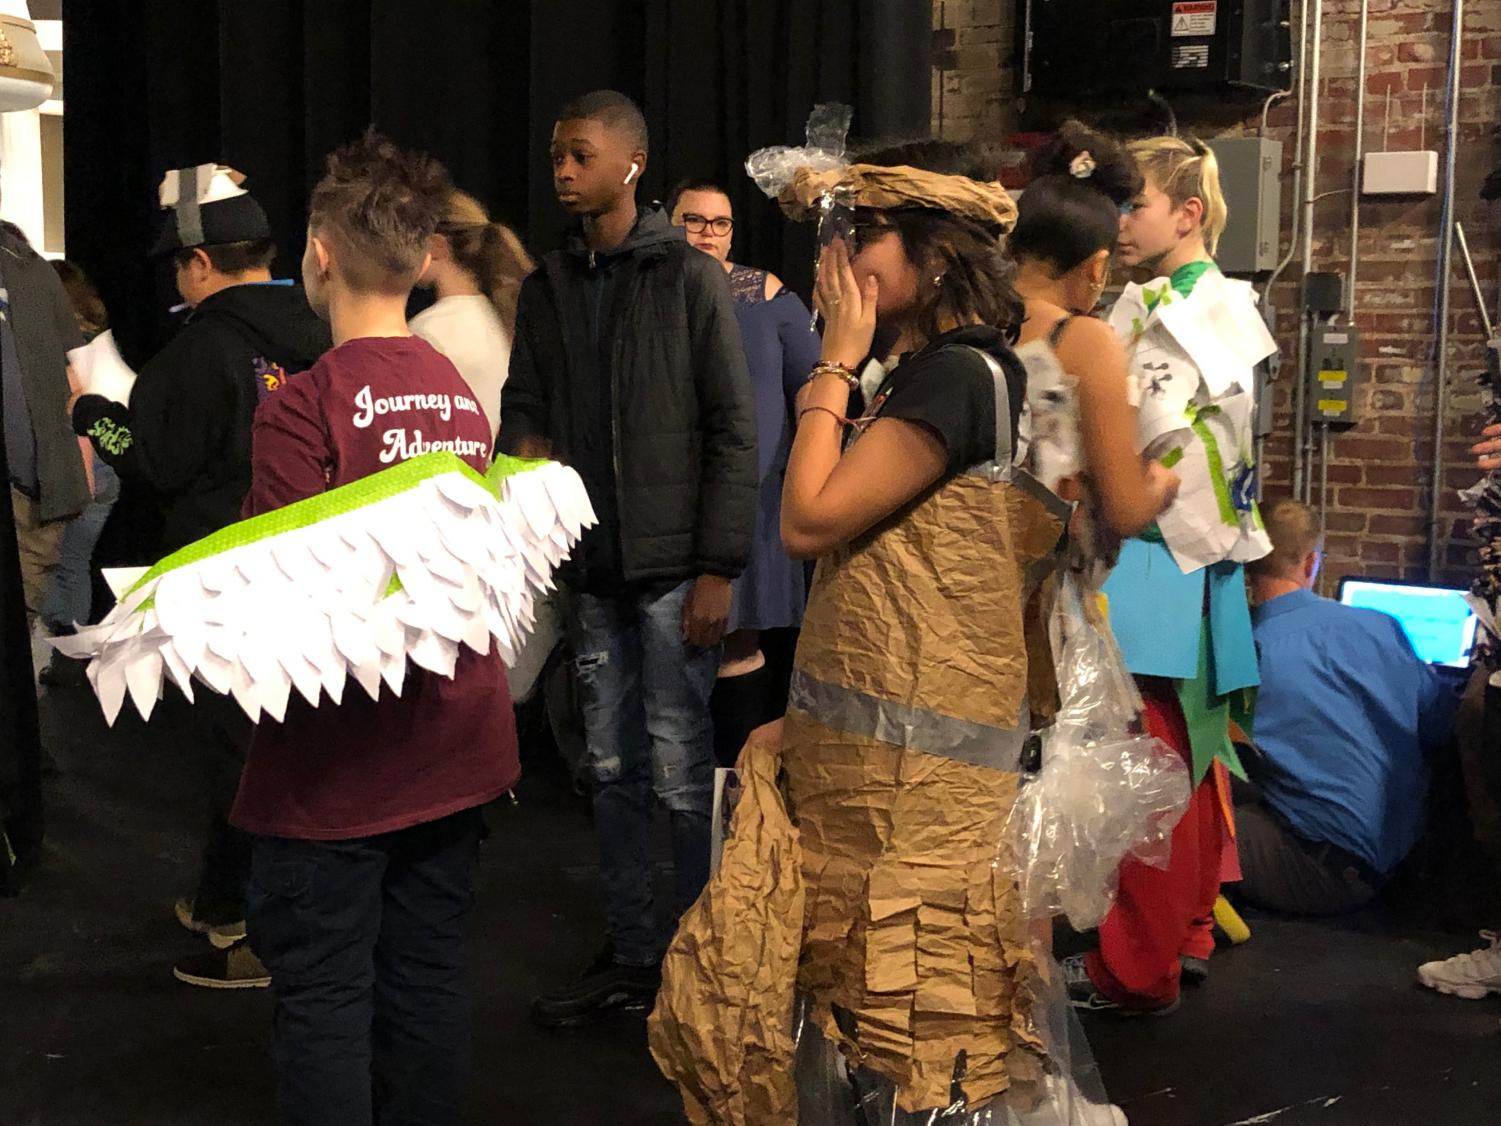 Pre-show rush, creators gather backstage to make their last alterations. Students practiced their runway walks and added to their outfits under the supervision of science teacher Cassandra Lentz and Makerspace teacher Josh Linn.